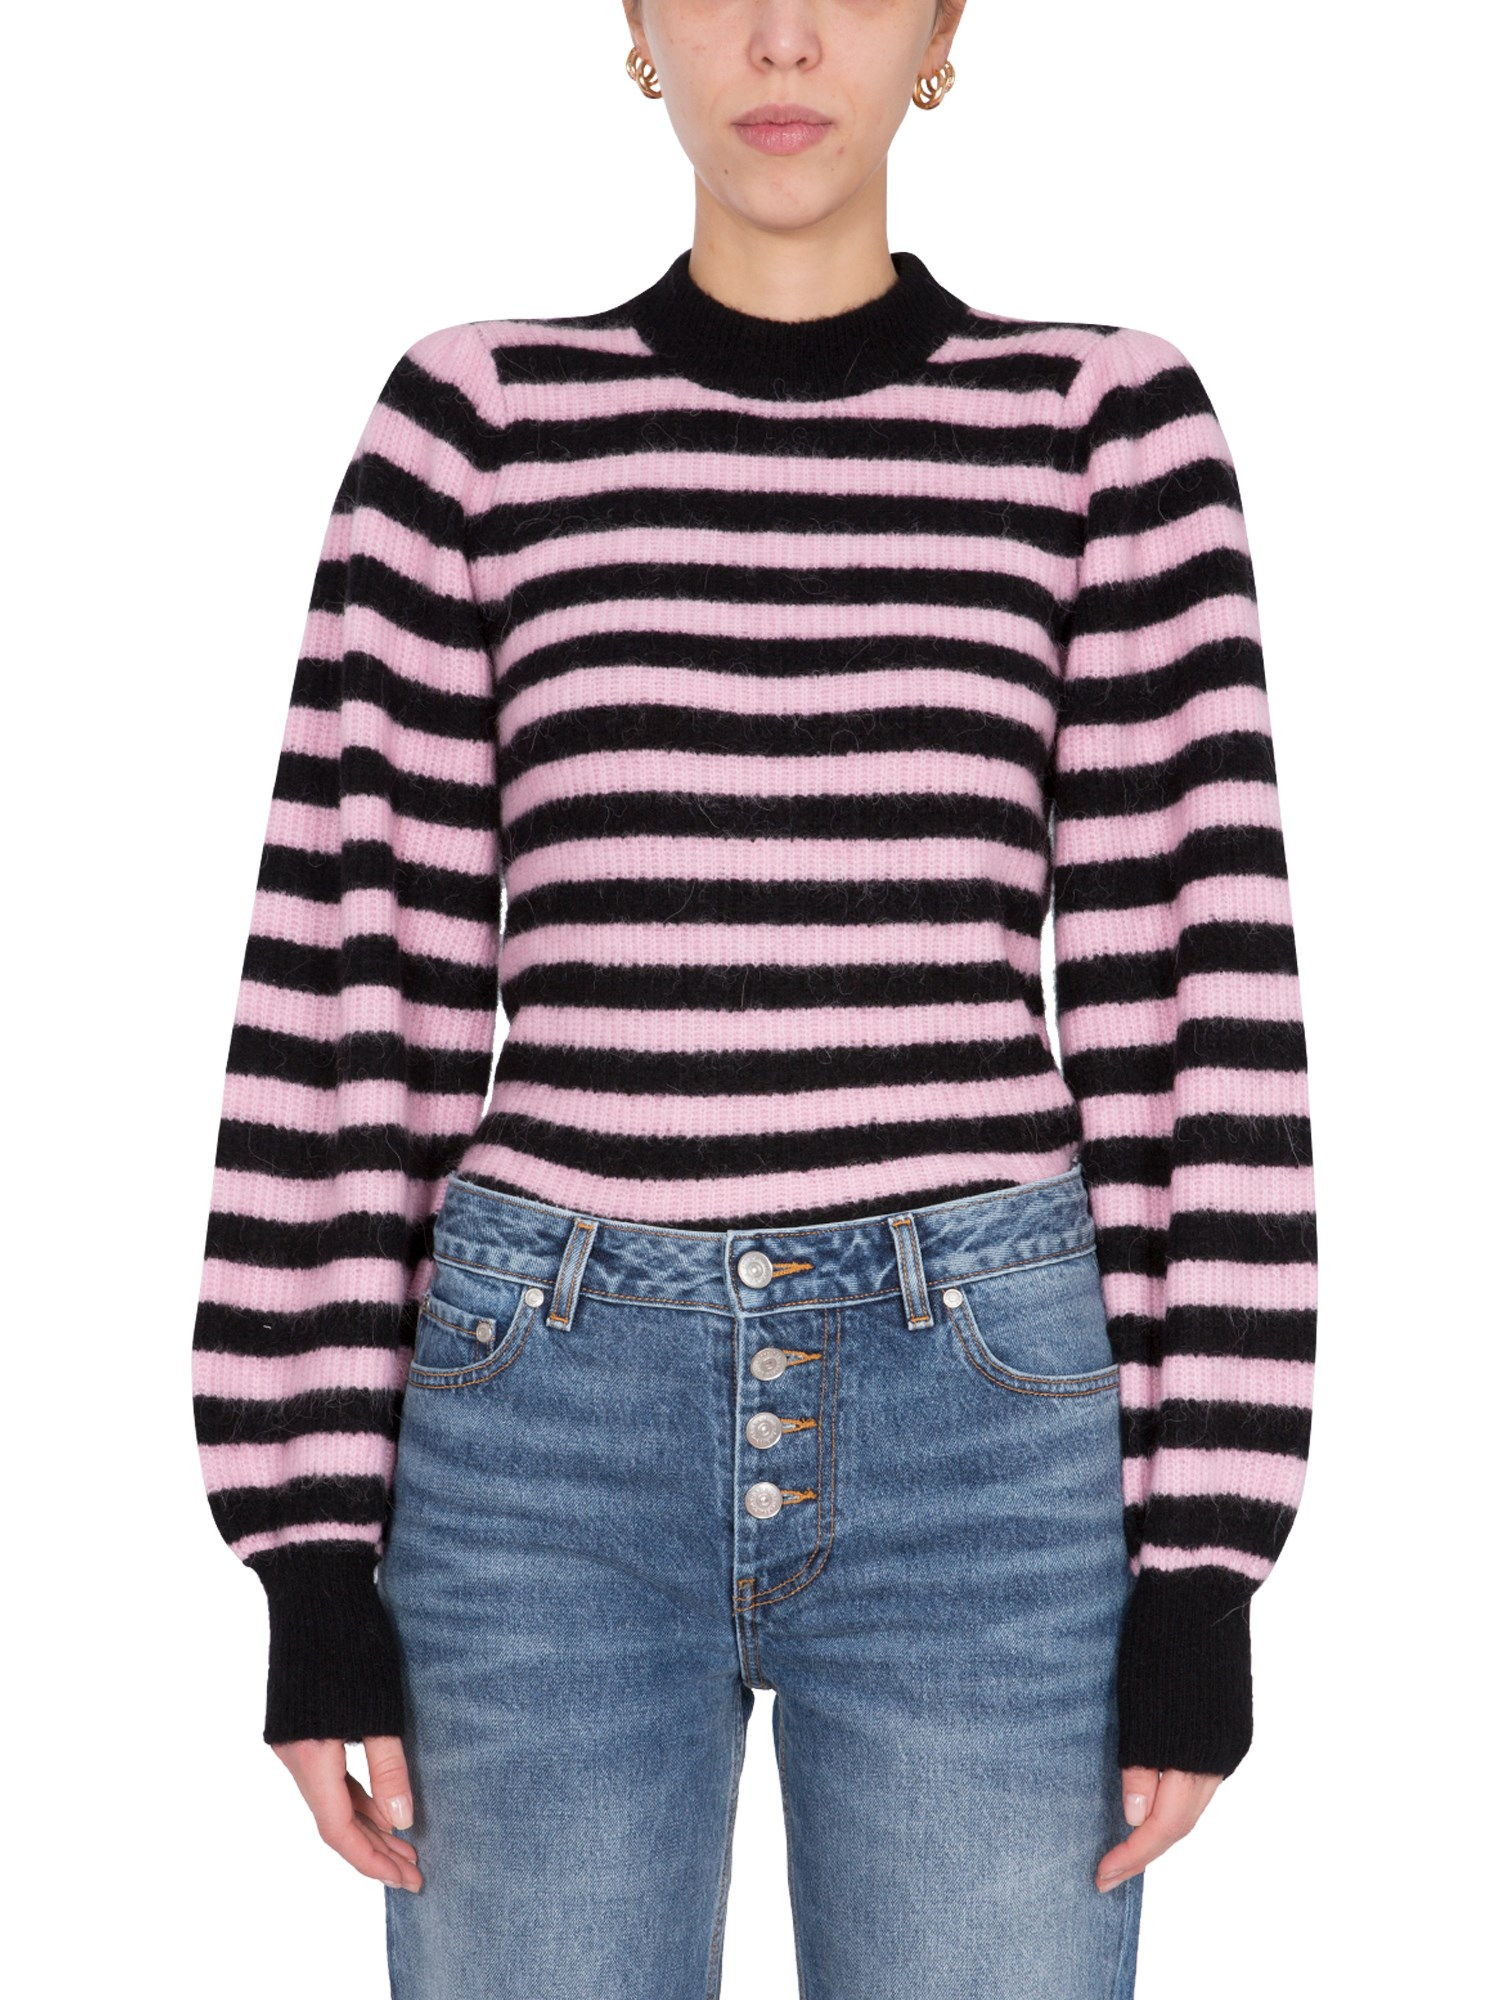 ganni sweater with striped pattern